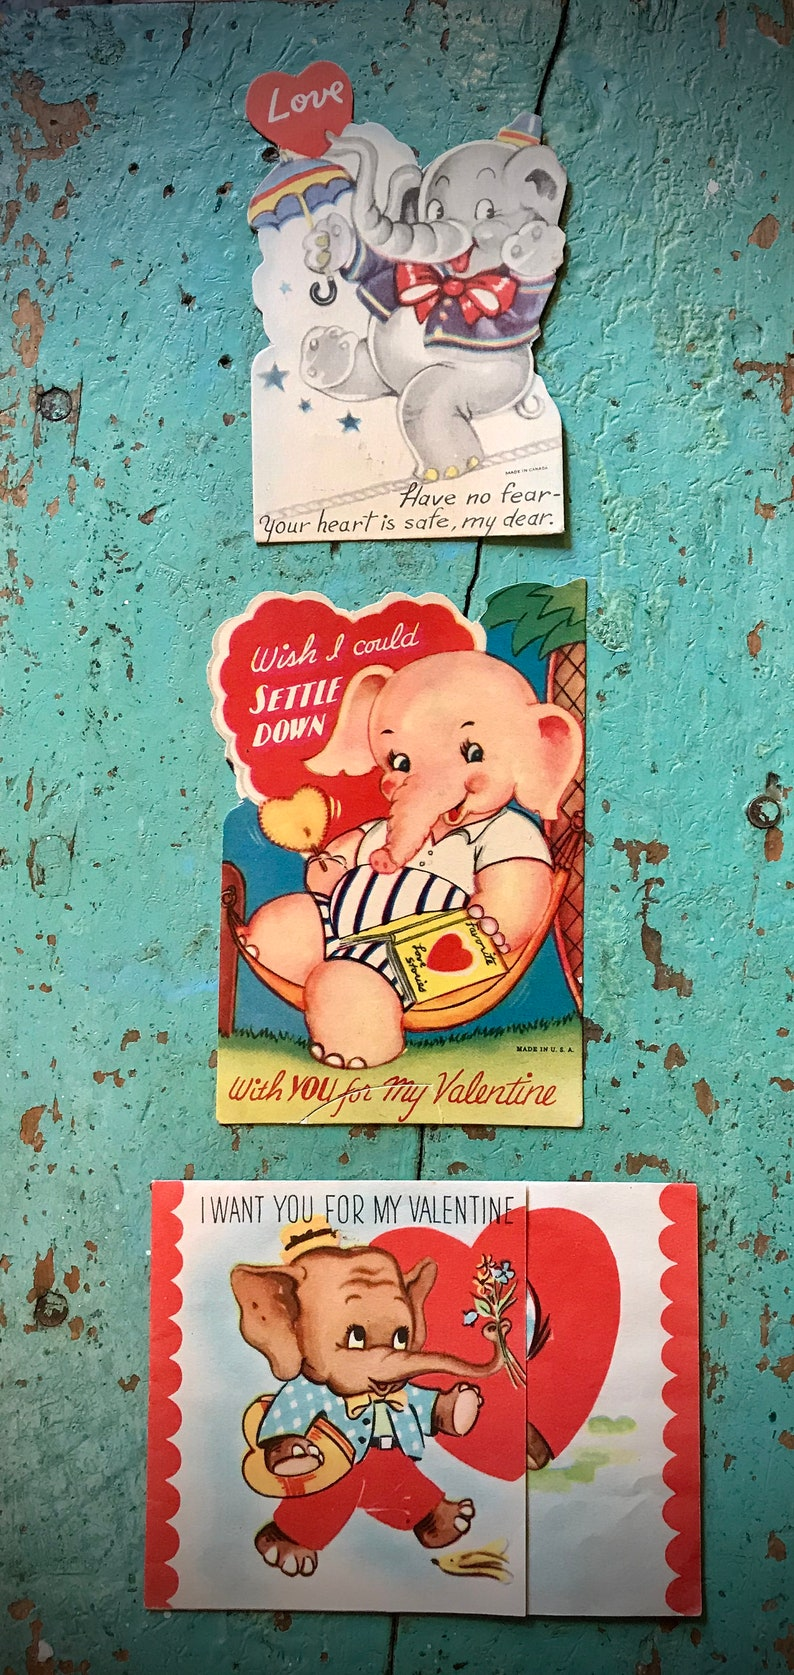 Vintage Valentines Set of 3 Elephants Old Collectible 1950s Era Animals Circus Carnival Red Pink Hearts Decor Display Prop Craft Gift Cards